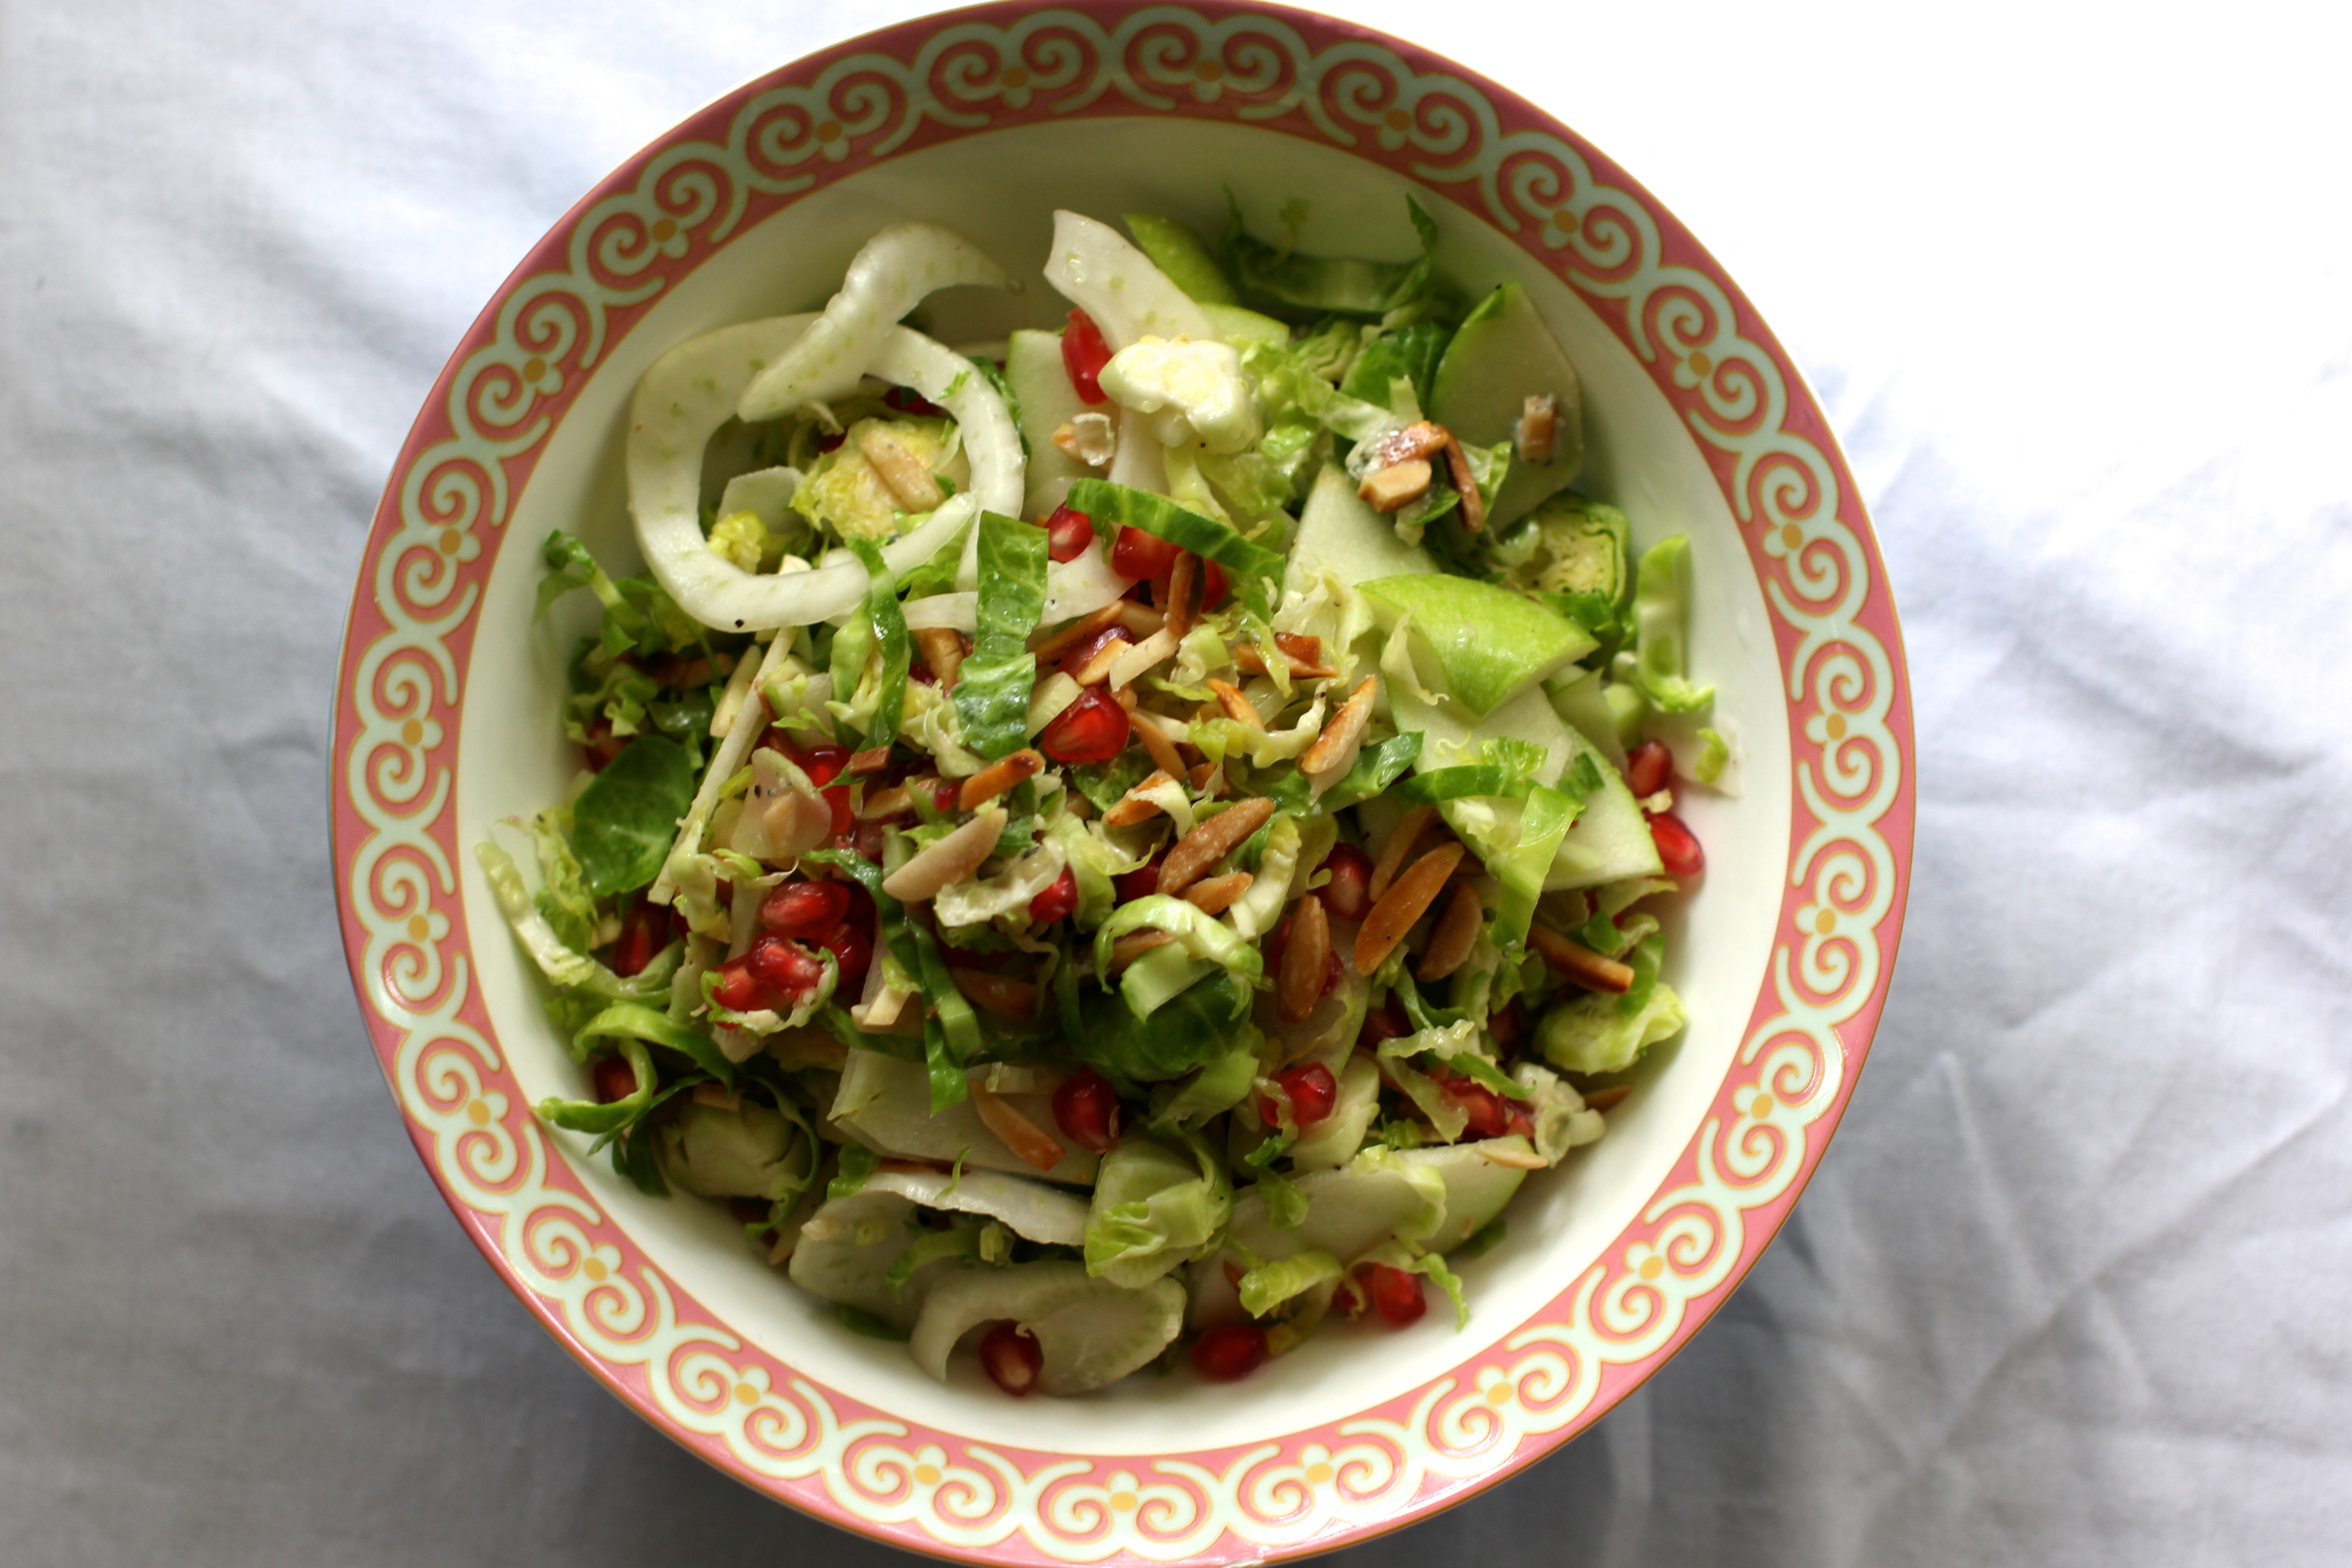 warm brussels sprout salad warm brussels sprout salad brussels sprouts ...